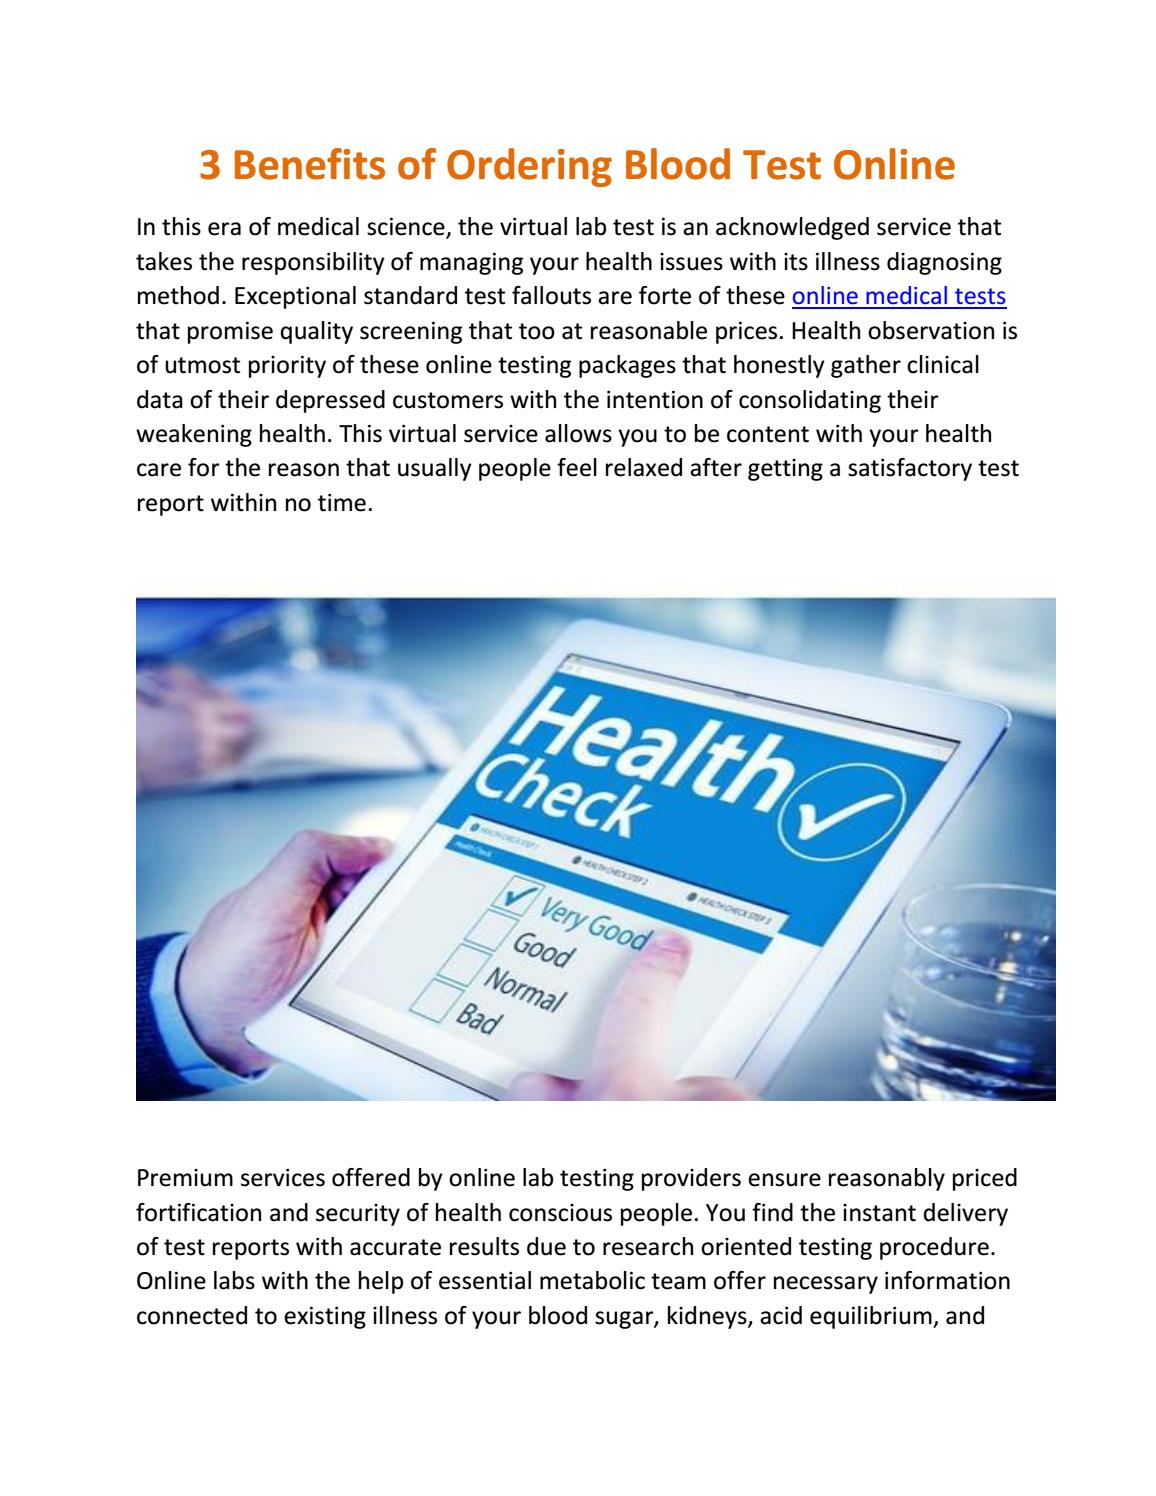 Order blood test online with healthycheckup by Rafael